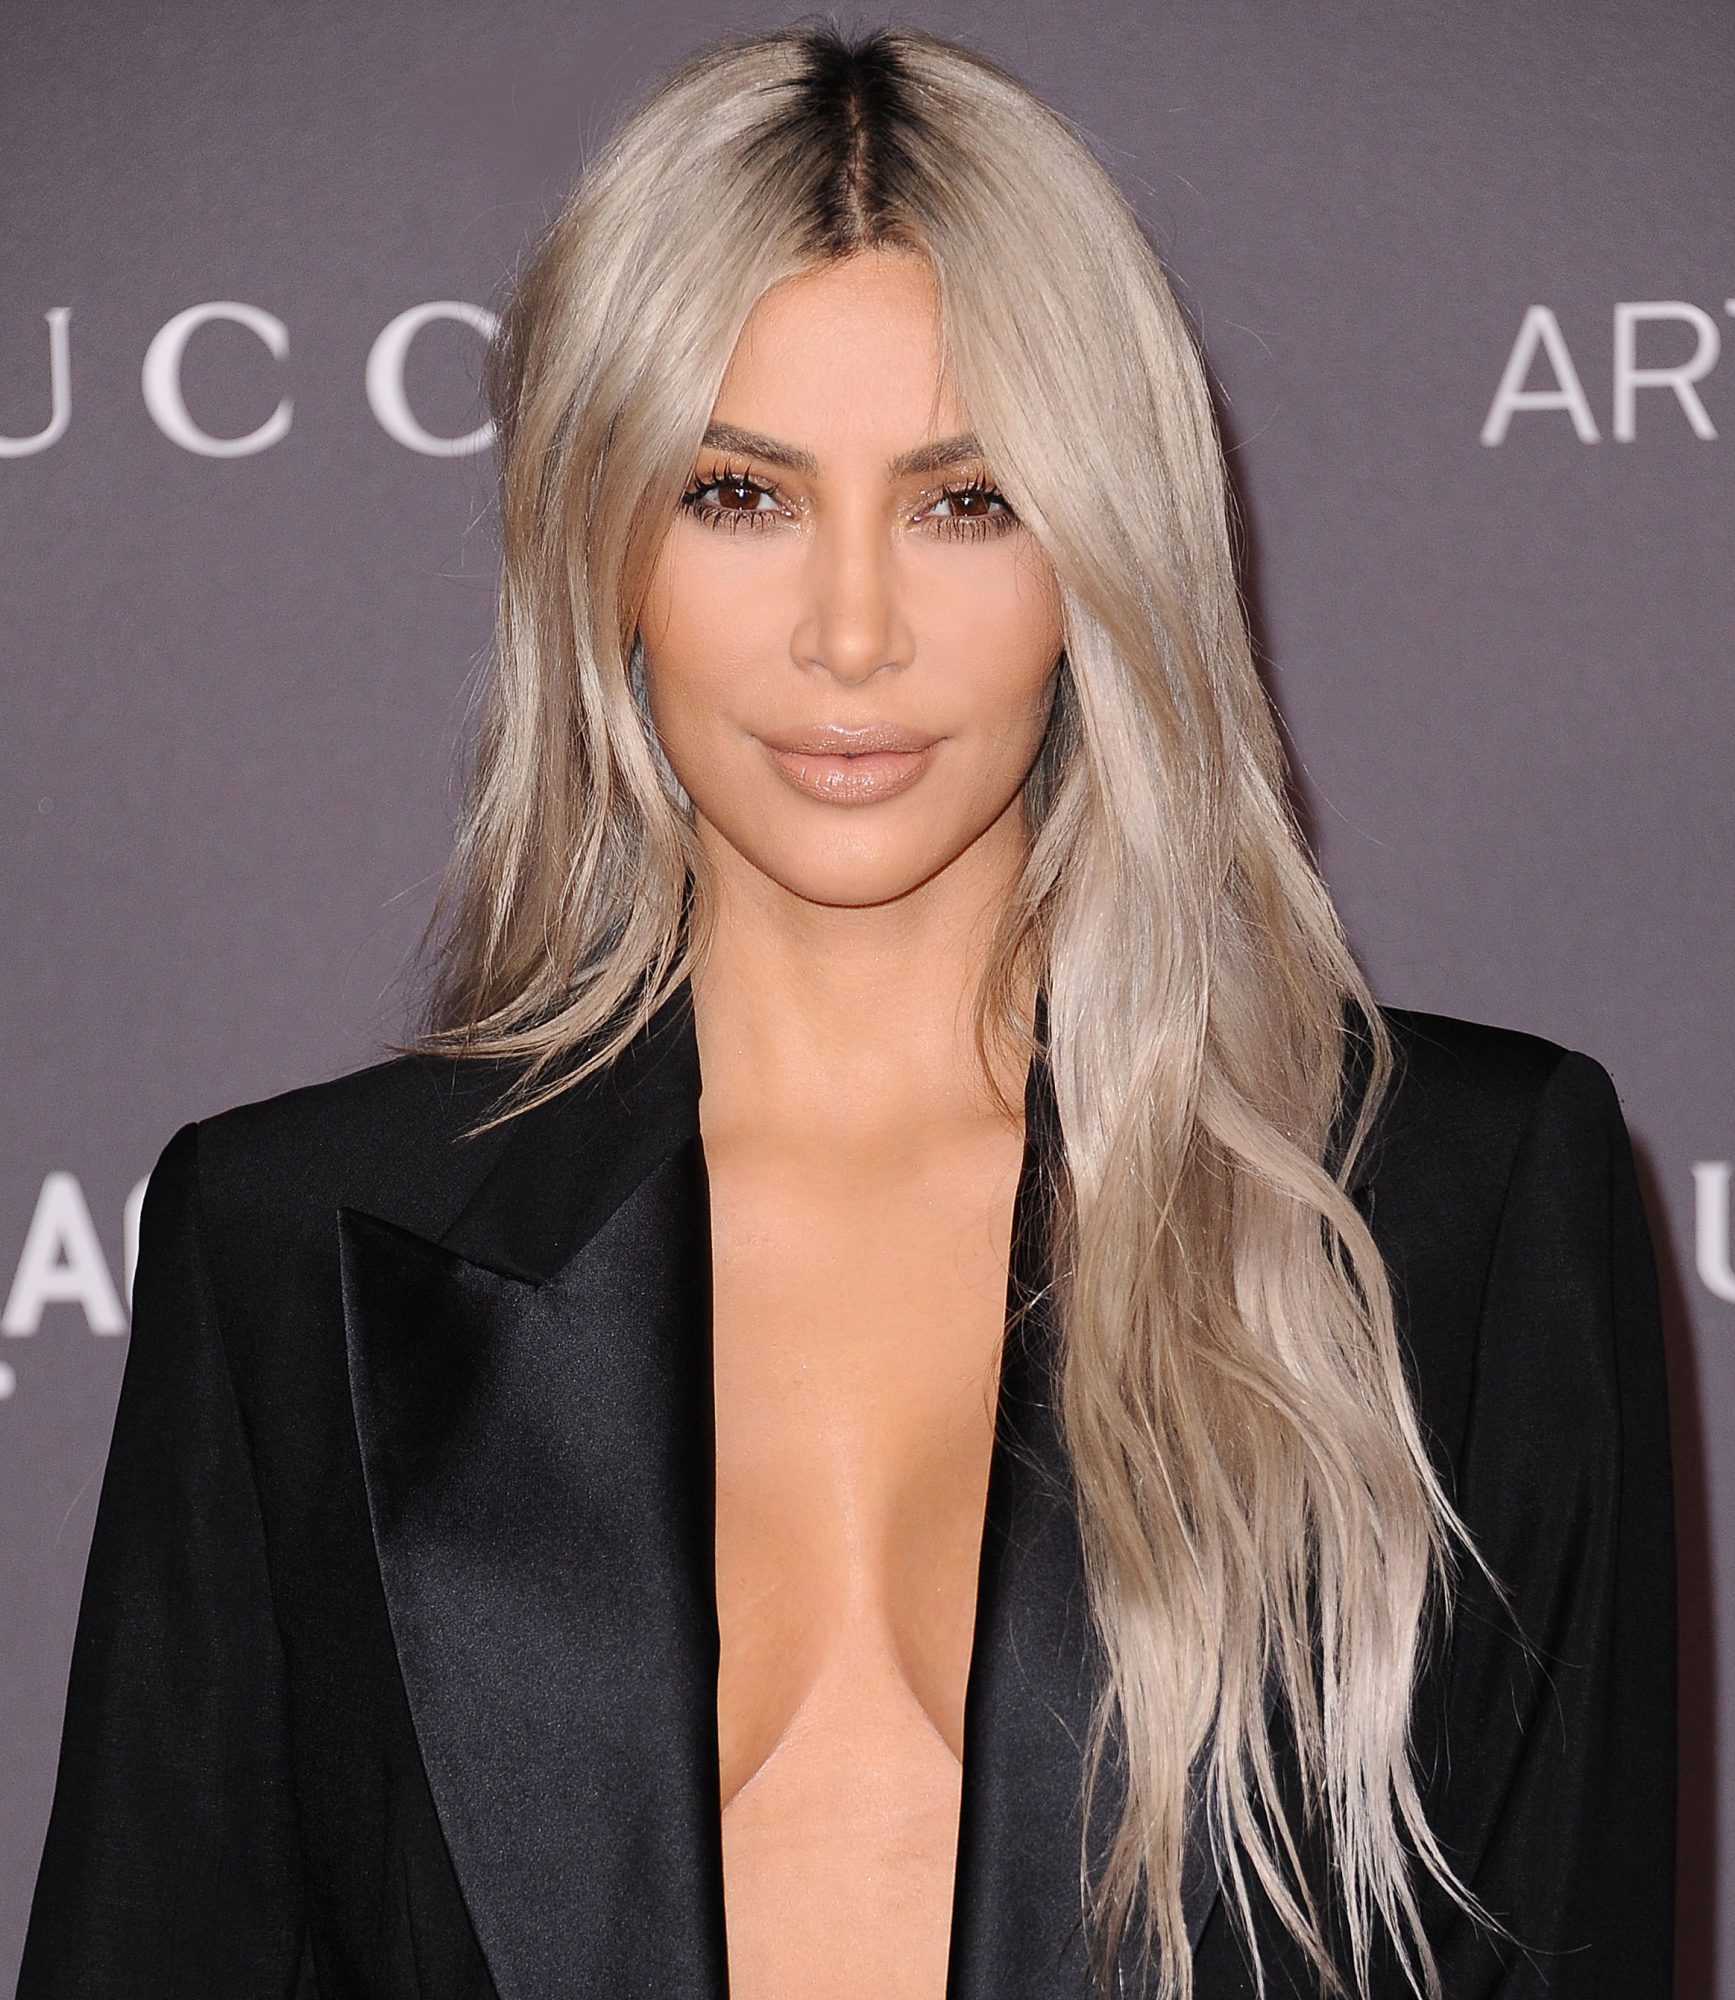 This Unexpected Hair Color Trend Saves You Time <em>and</em> Money